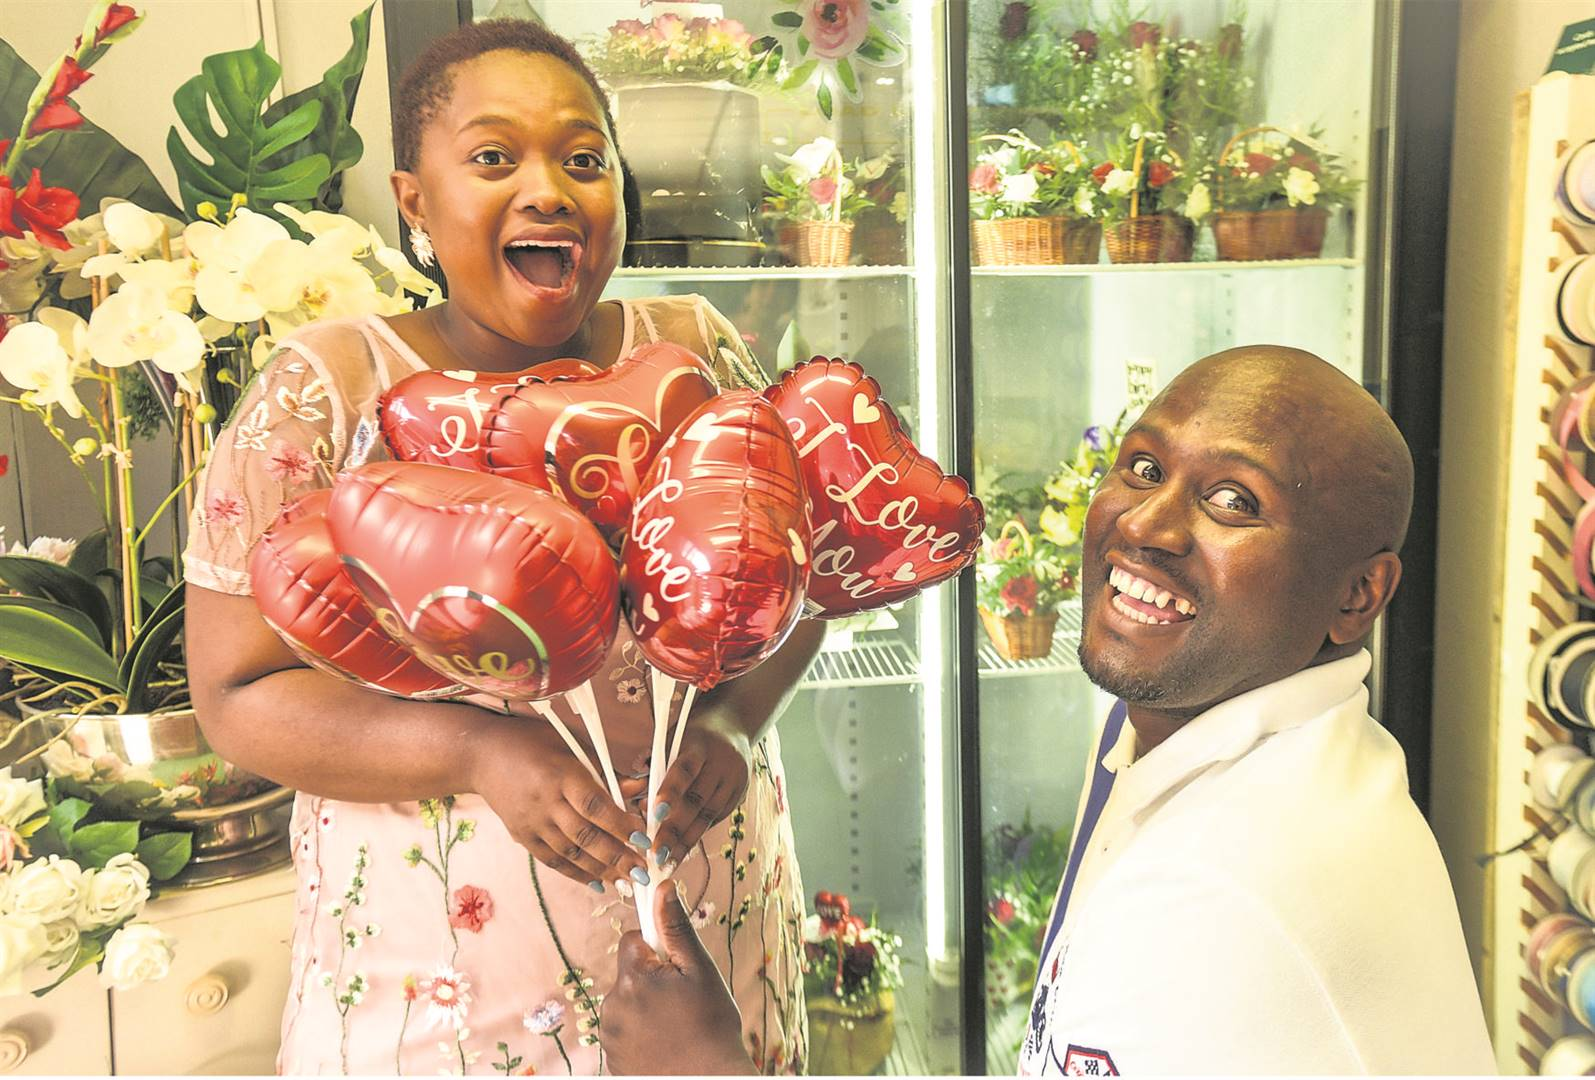 Emafini Nobaza presented his partner, Leza Duntsu, with a 'bouquet of balloons' in readiness for Valentine's Day.PHOTO: moeketsi mamane